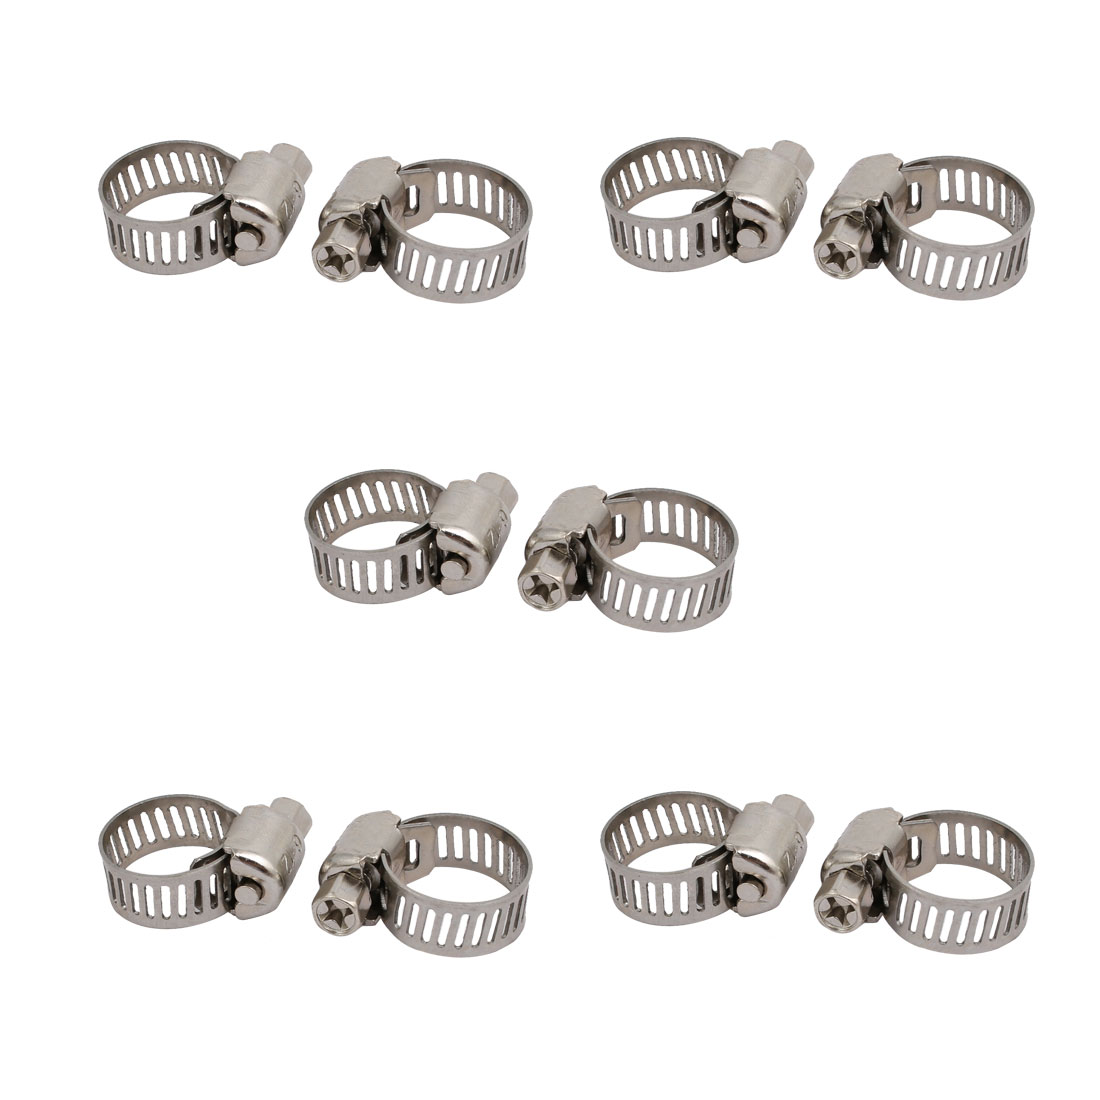 6-12mm Stainless Steel Adjustable Worm Gear Hose Clamps Silver Tone 10pcs